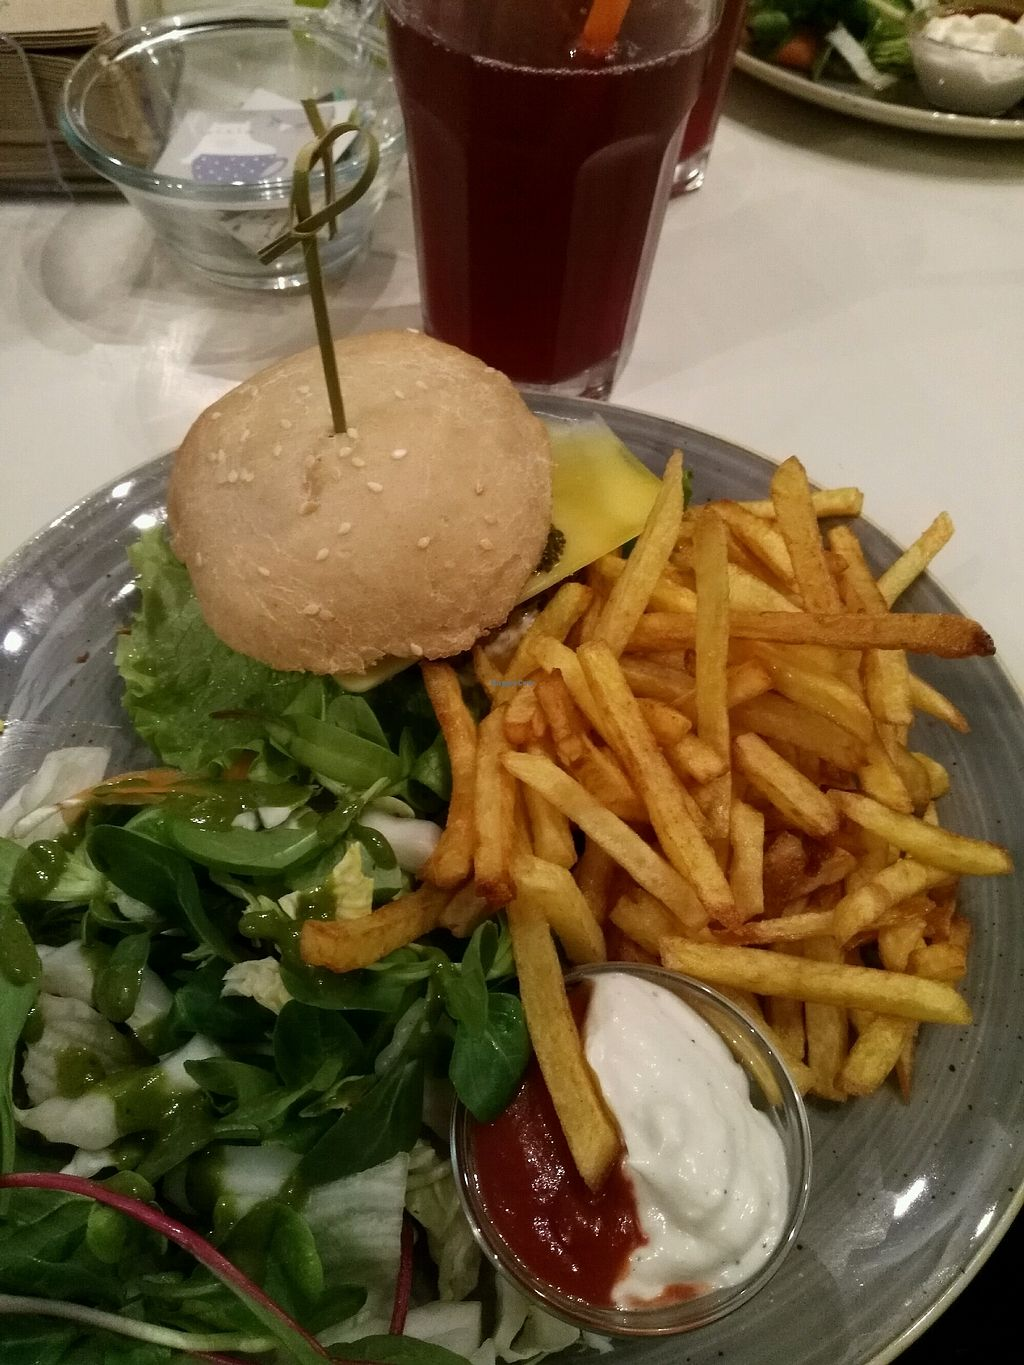 """Photo of Holigans  by <a href=""""/members/profile/AinoPajukangas"""">AinoPajukangas</a> <br/>Vegan burger with organic french fries and homemade lemonade <br/> December 27, 2017  - <a href='/contact/abuse/image/69372/339582'>Report</a>"""